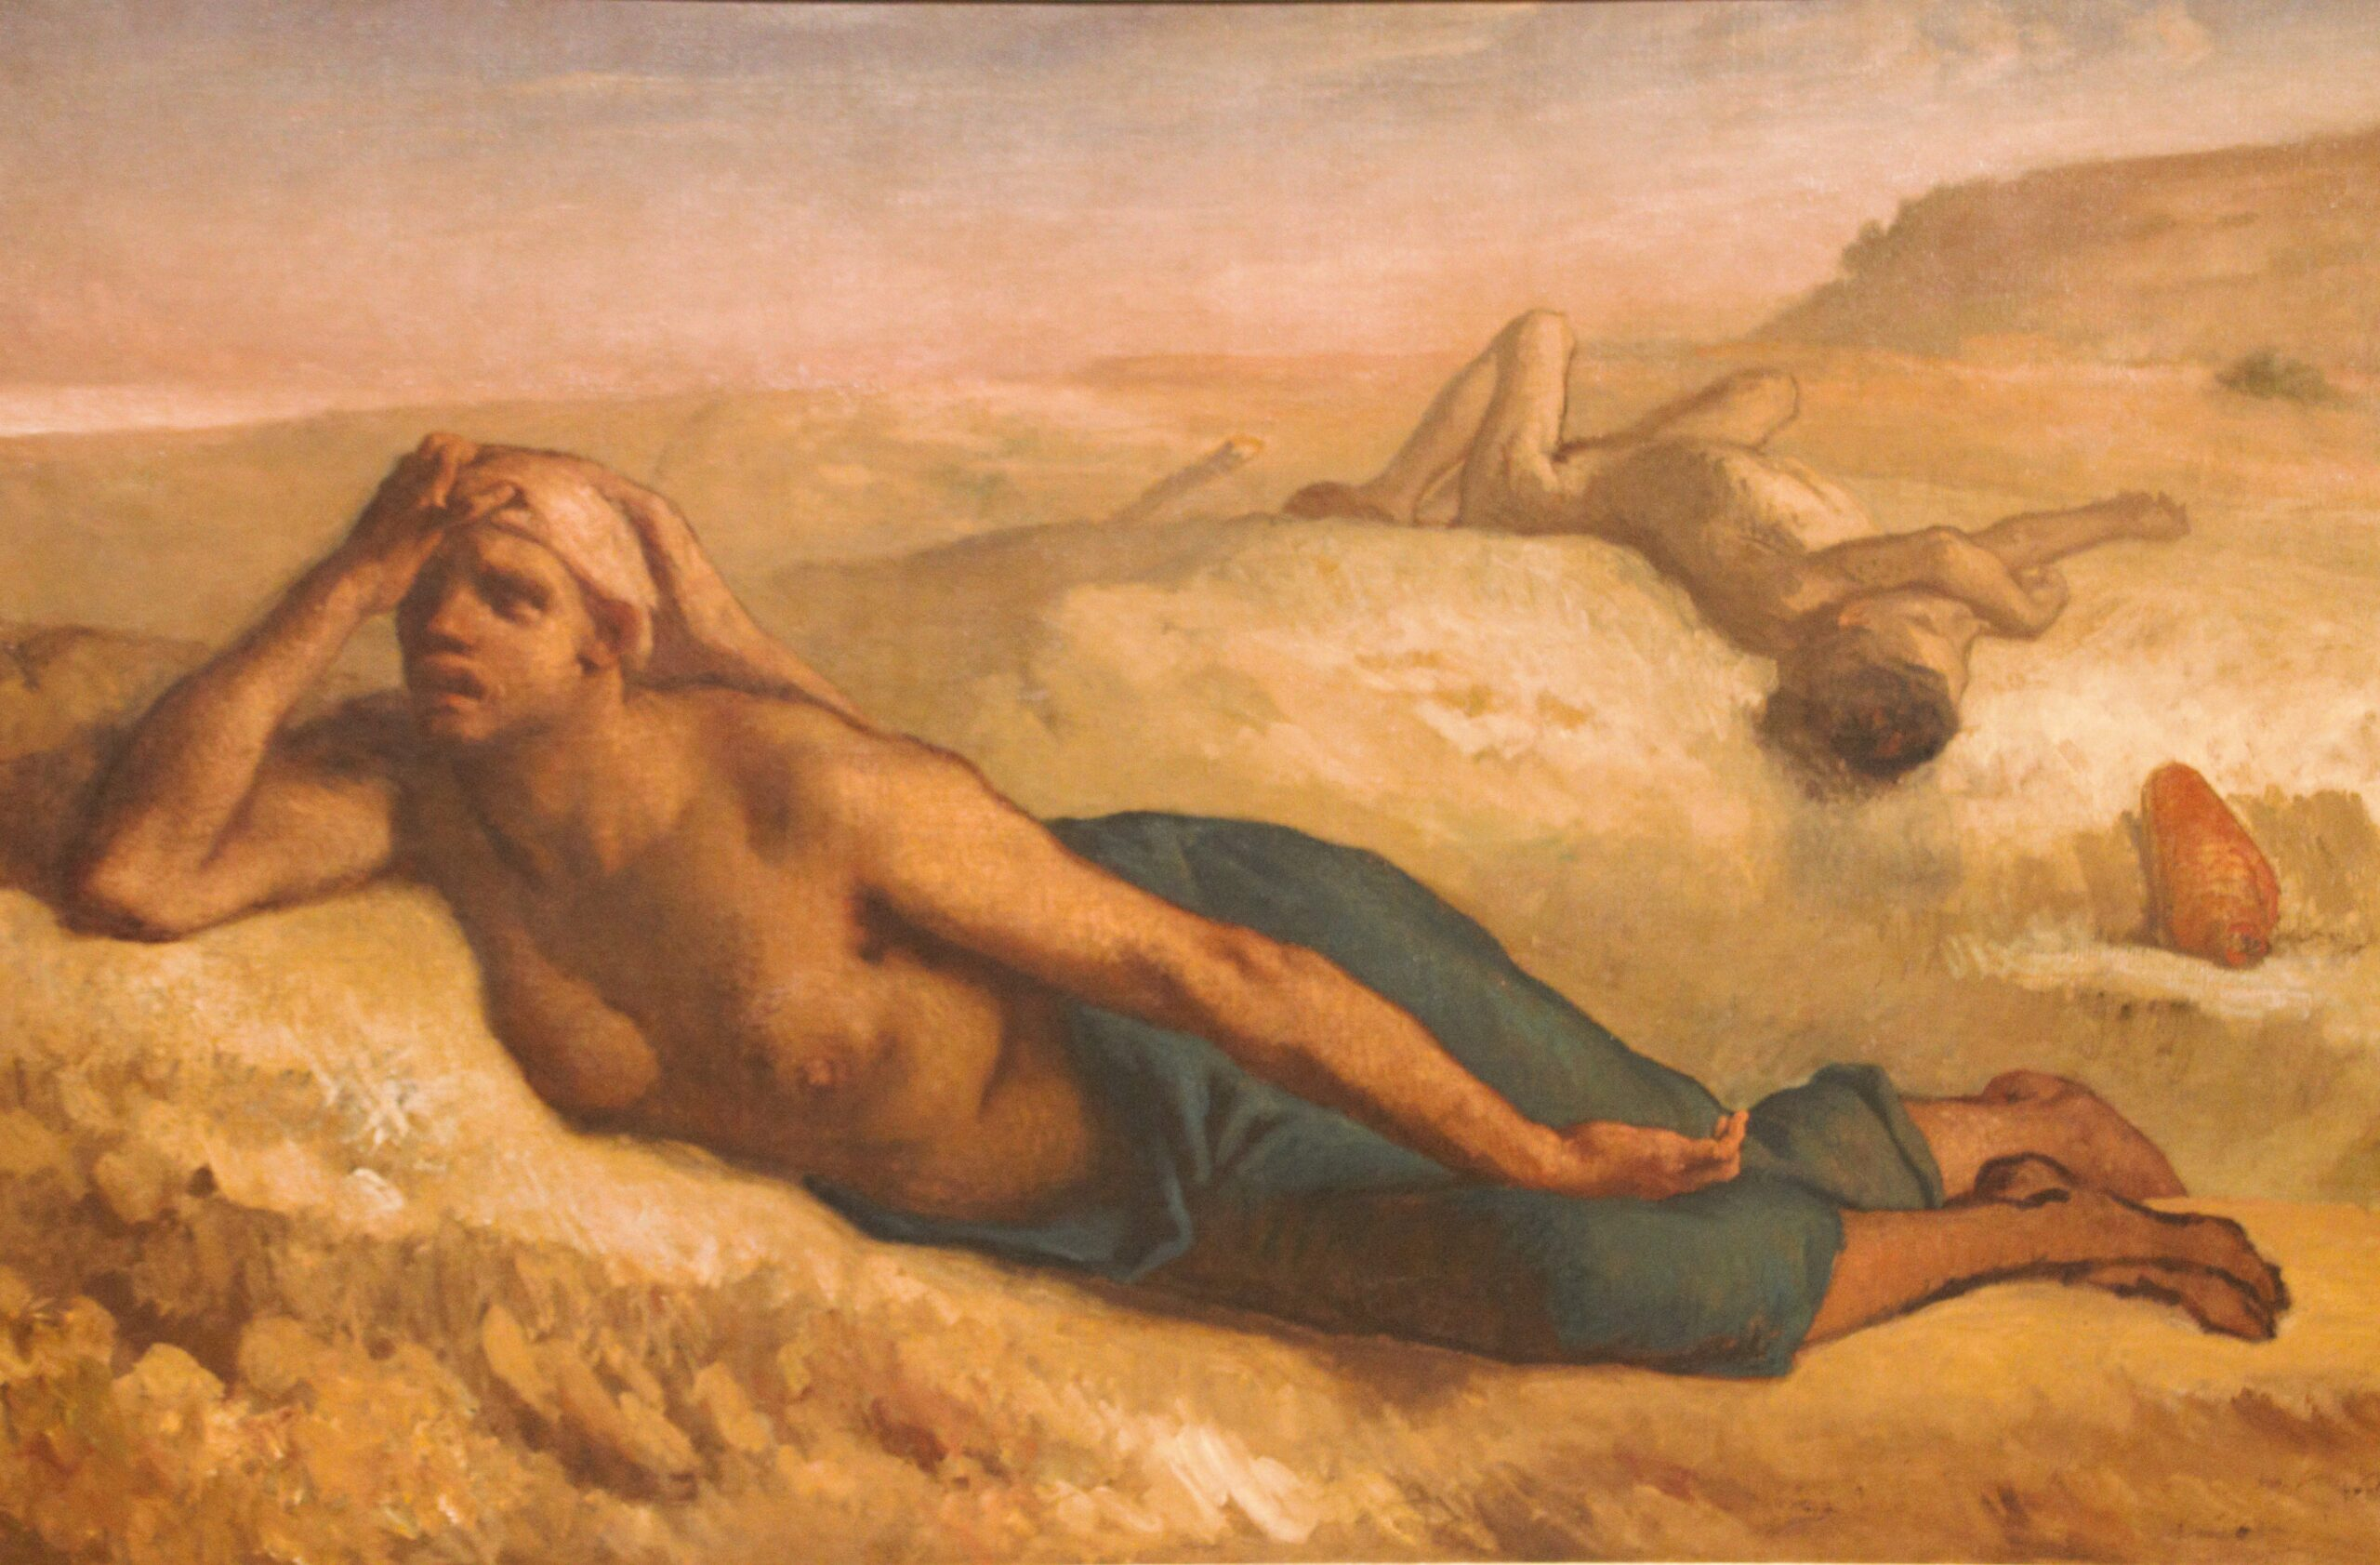 Jean-François Millet's unfinished painting of Hagar and Ishmael, 1849.